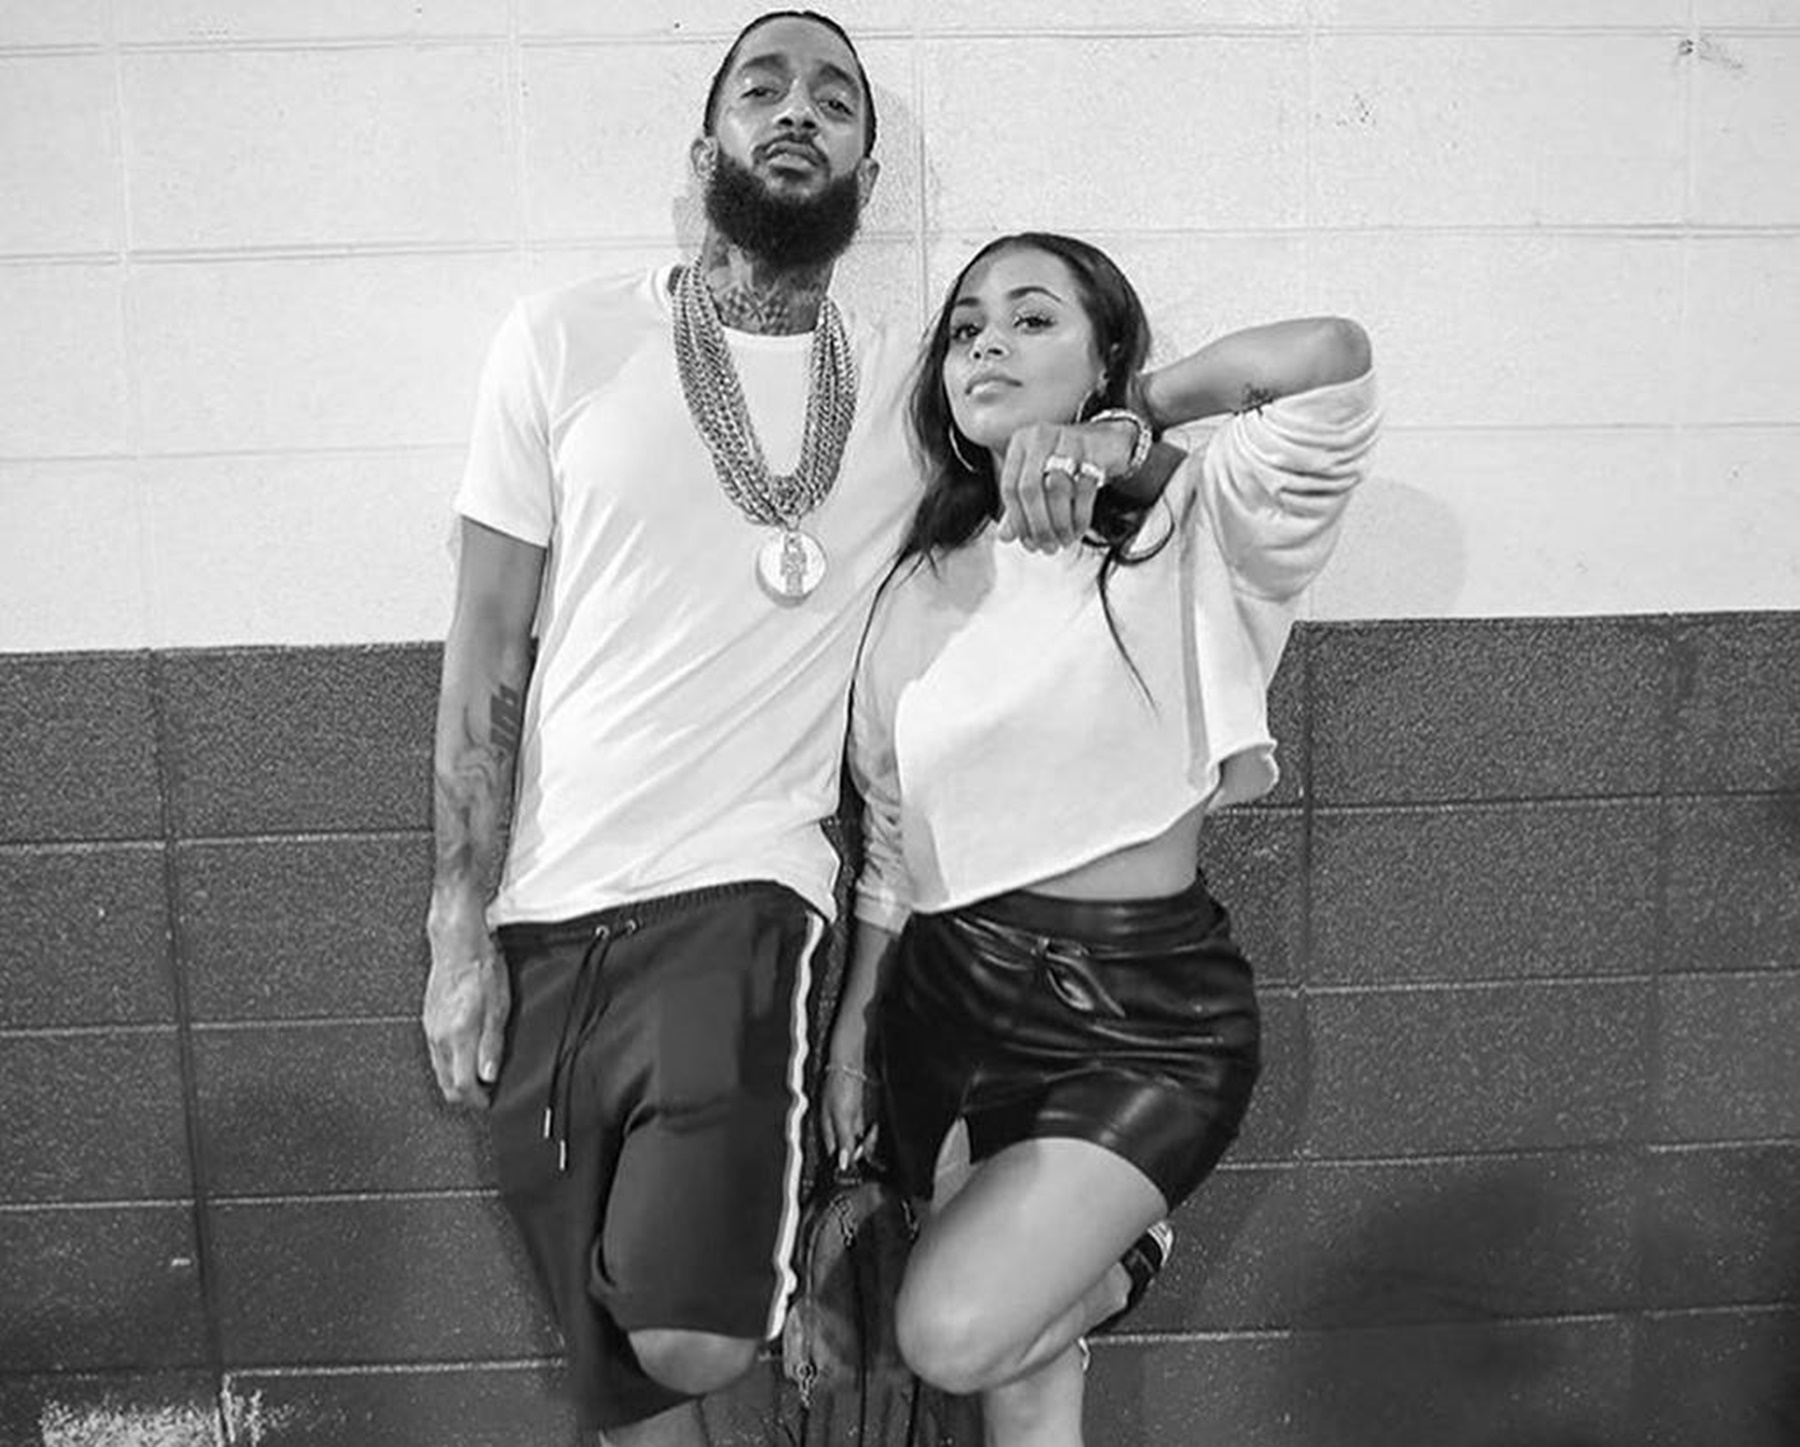 lauren-london-debuts-massive-tattoo-of-nipsey-hussle-photo-gives-fans-chills-and-here-is-why-the-rapper-will-always-be-with-her